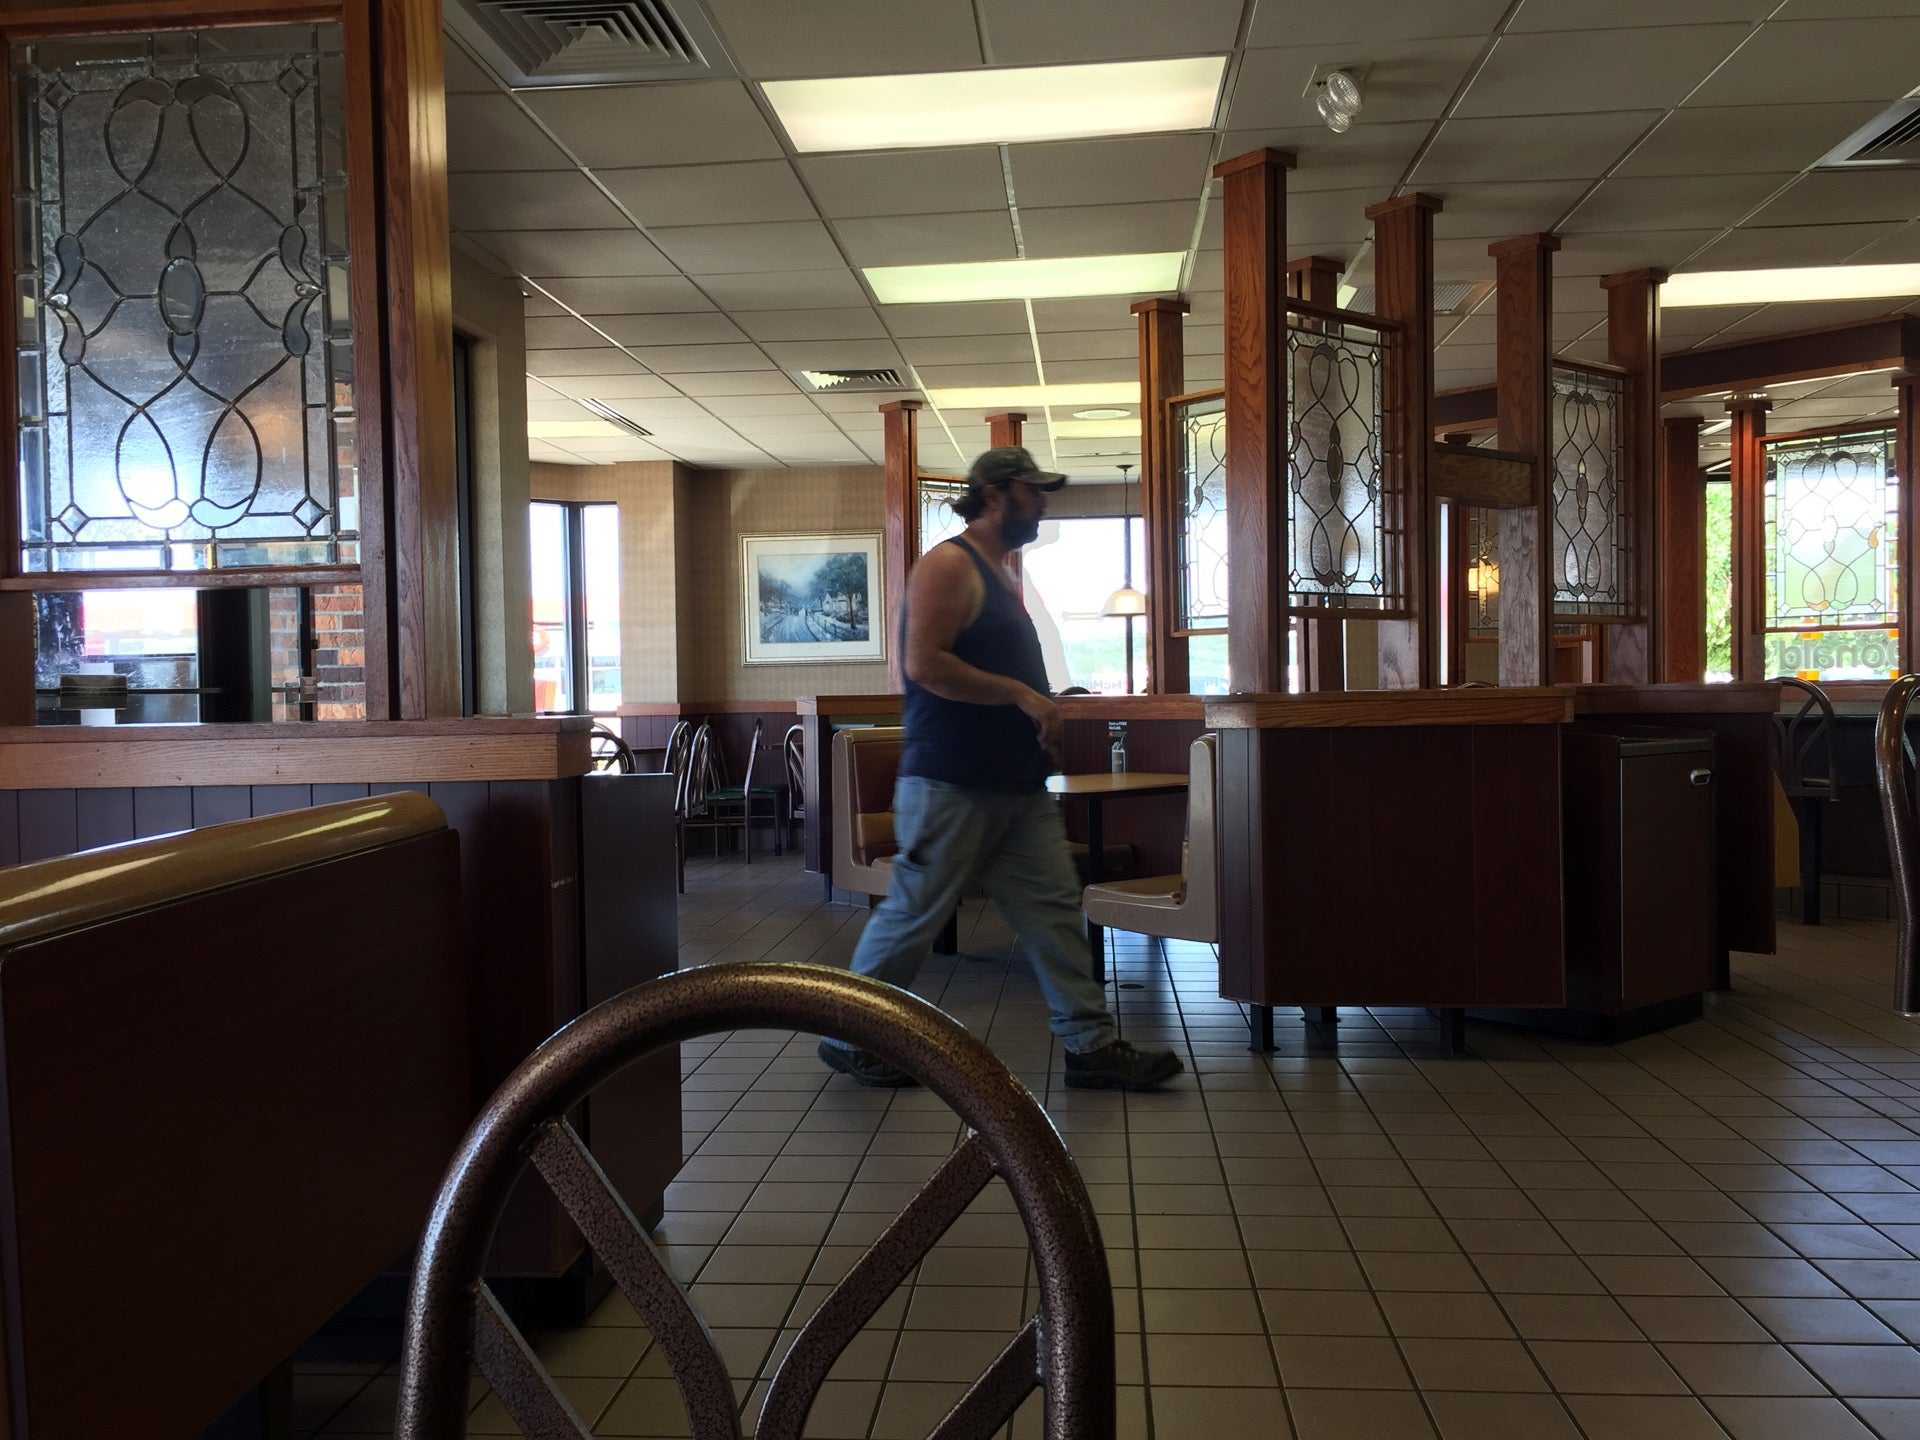 mcdonald s at 2816 singing hills blvd sioux city ia the daily meal